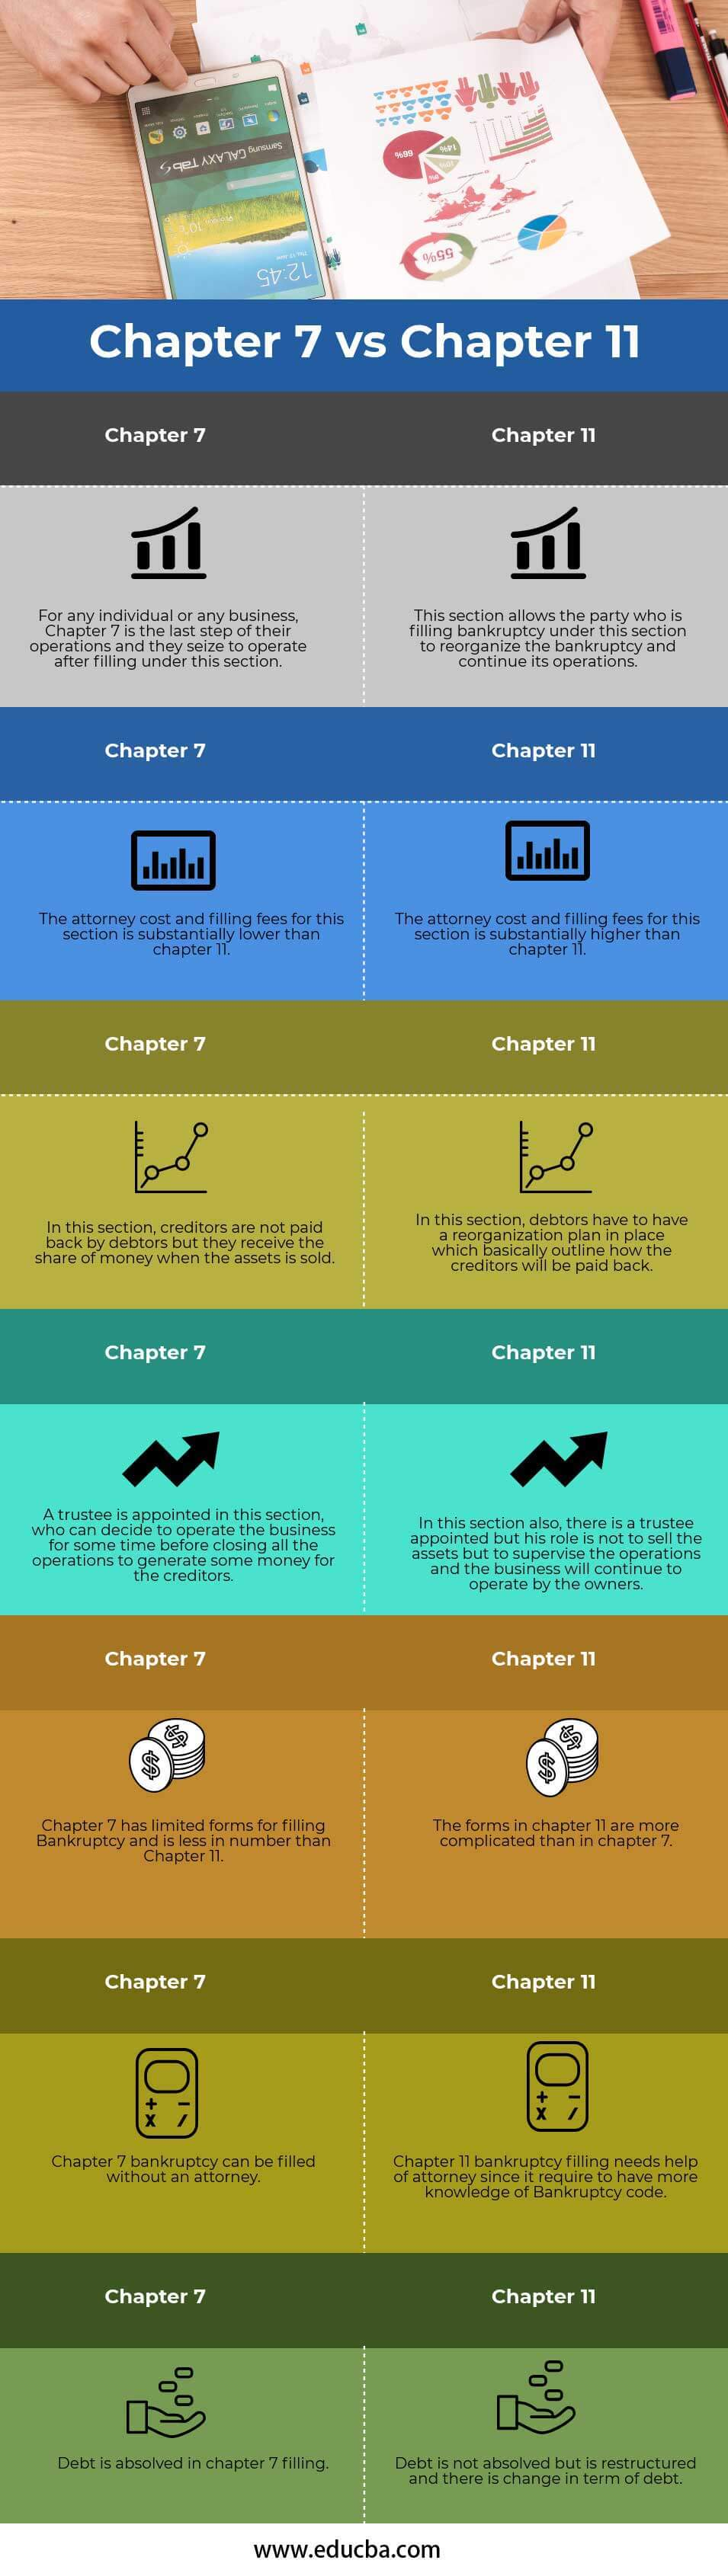 Chapter 7 vs Chapter 11 Infography